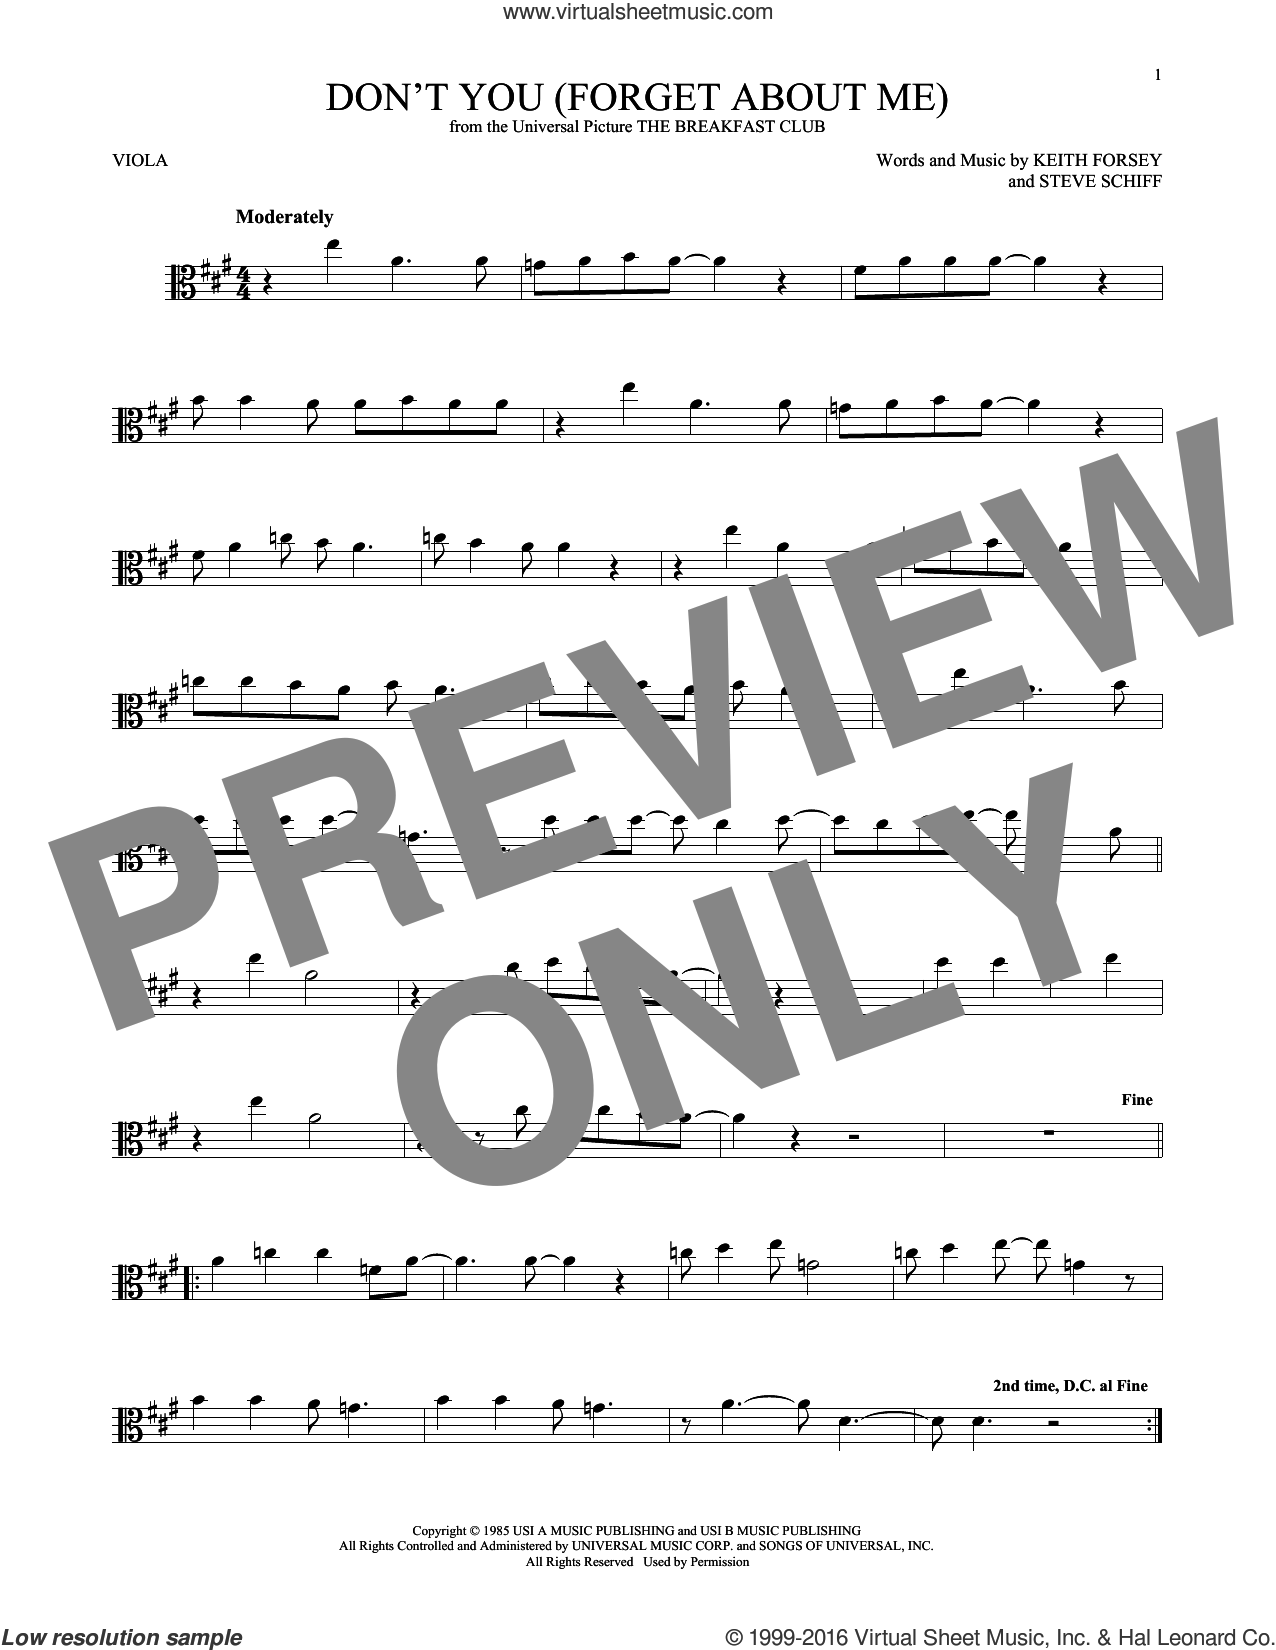 Don't You (Forget About Me) sheet music for viola solo by Steve Schiff, Hawk Nelson, Simple Minds and Keith Forsey. Score Image Preview.